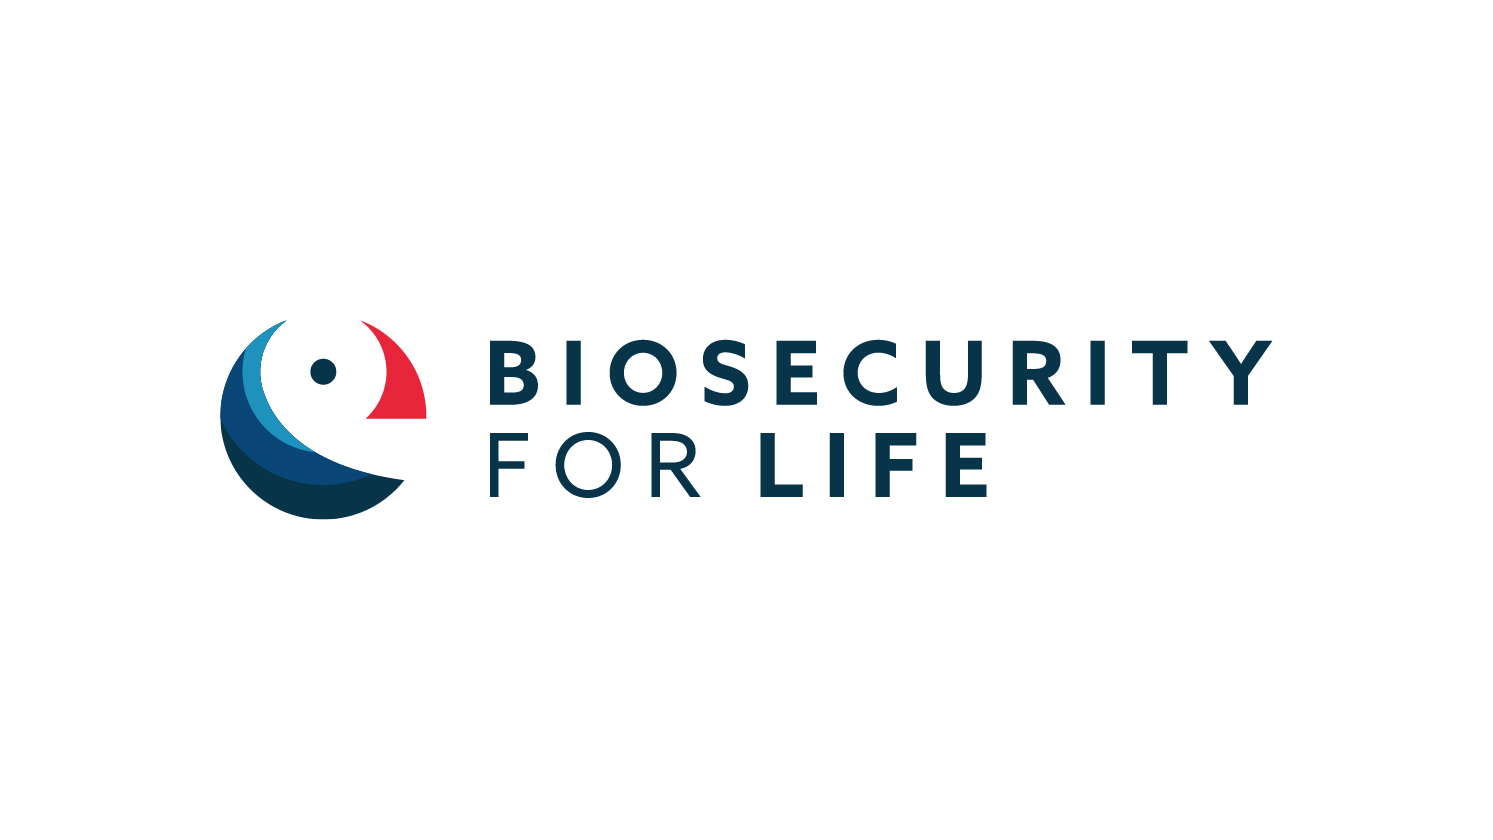 Biosecurity for life logo design by root studio 01